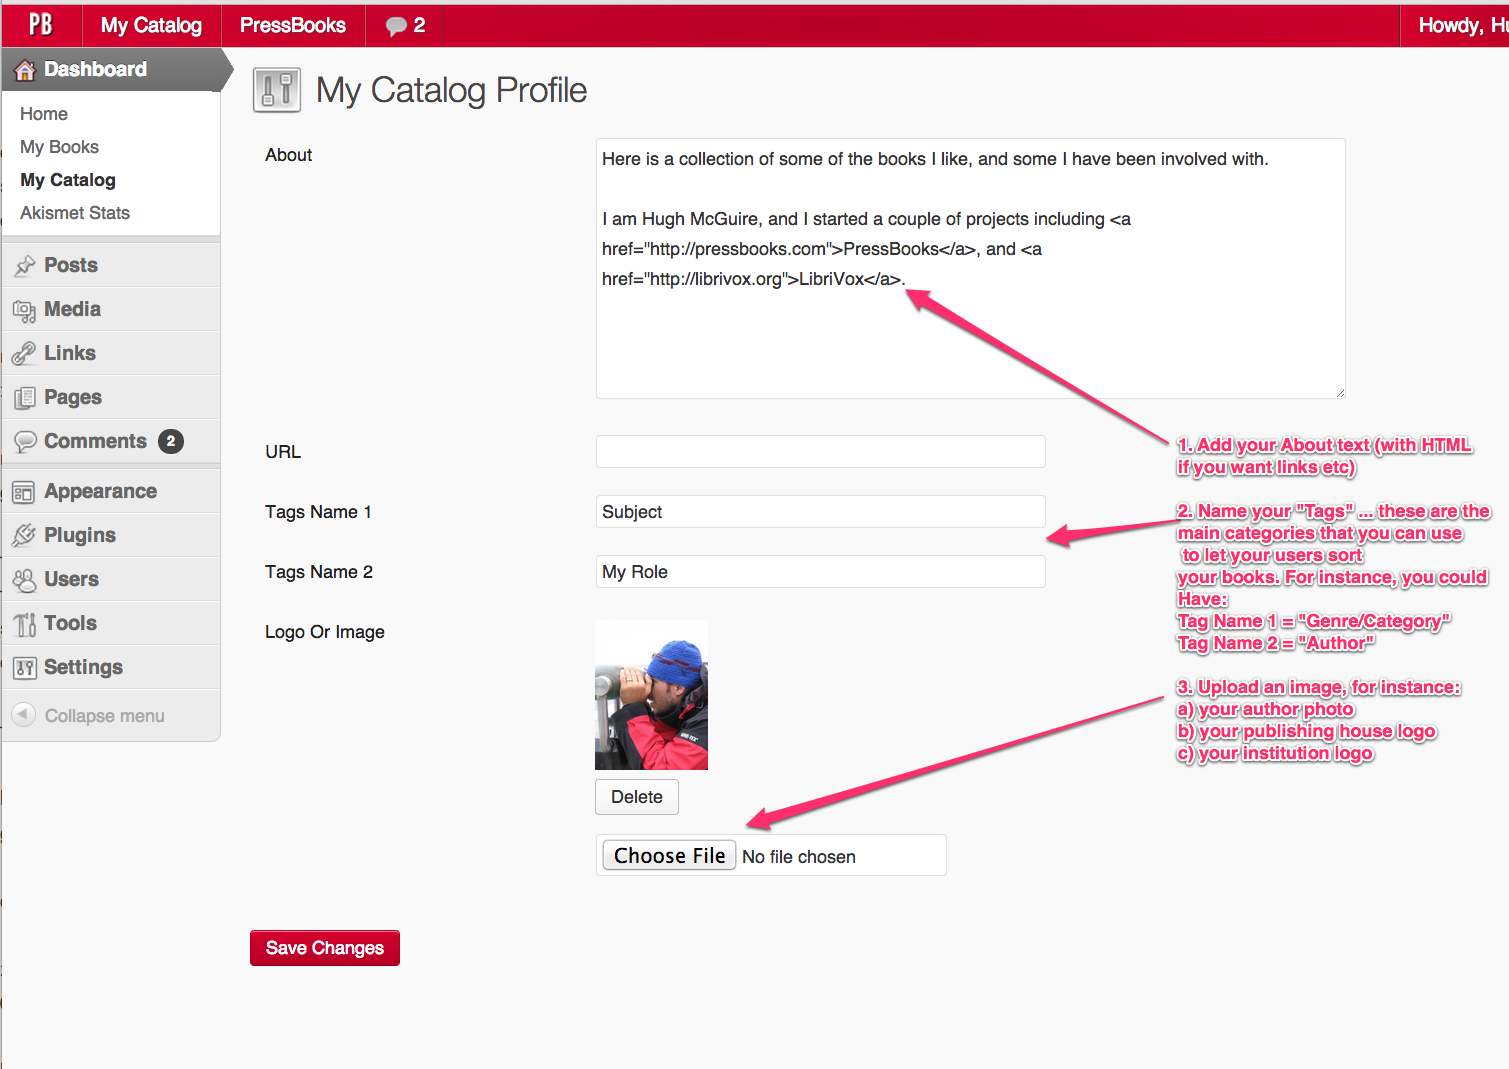 Catalog Profile Page